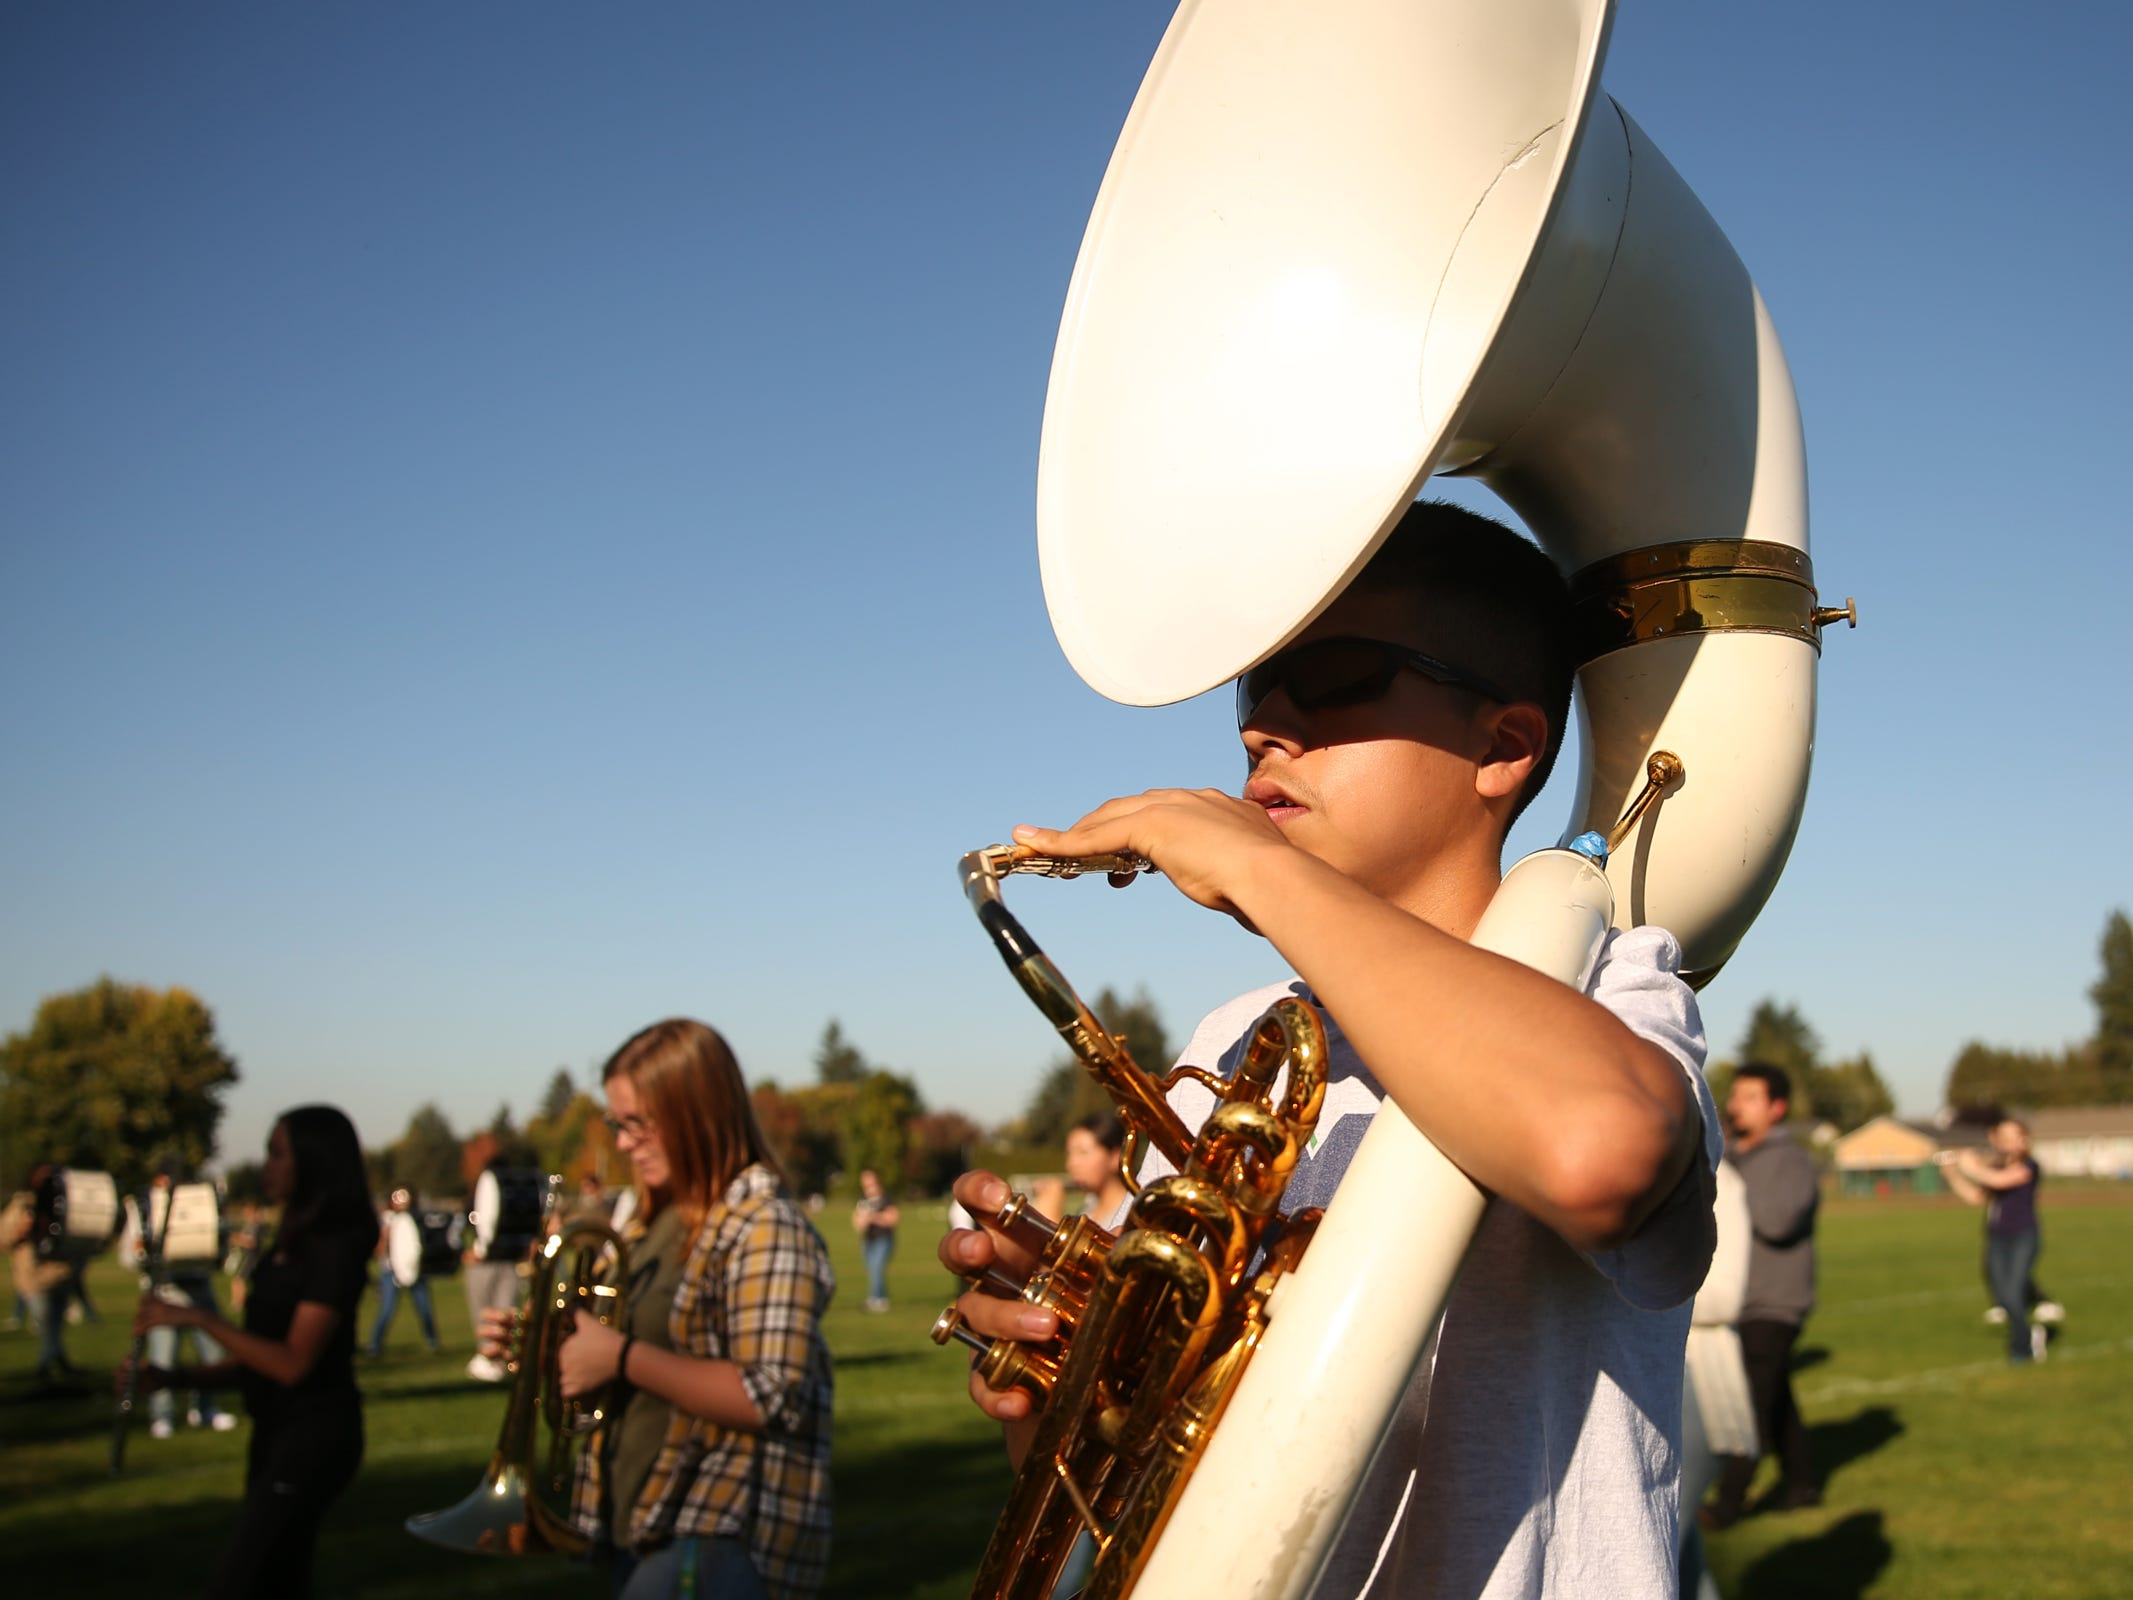 A McKay marching band sousaphone player rehearses at McKay High School in Salem on Thursday, Sep. 27, 2018.